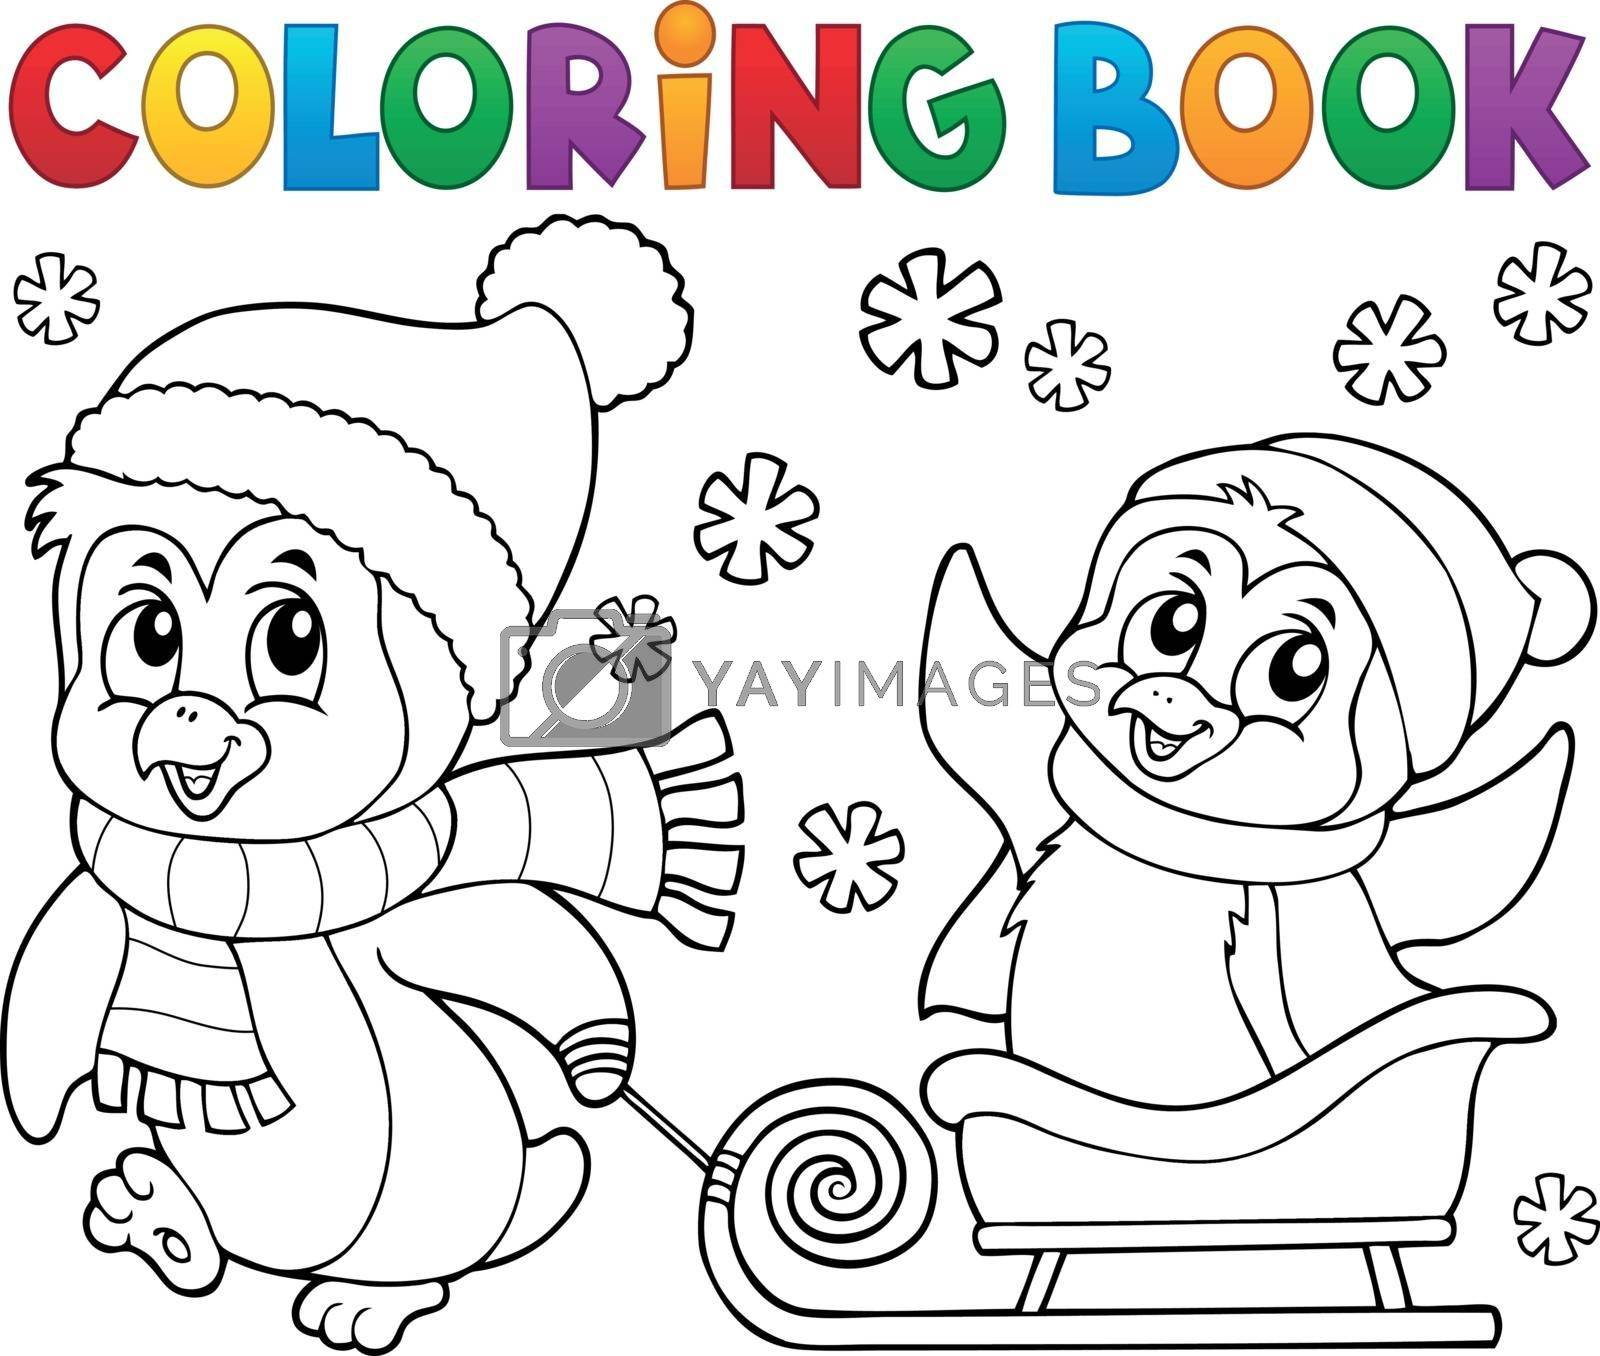 Coloring book Christmas penguin topic 8 - eps10 vector illustration.